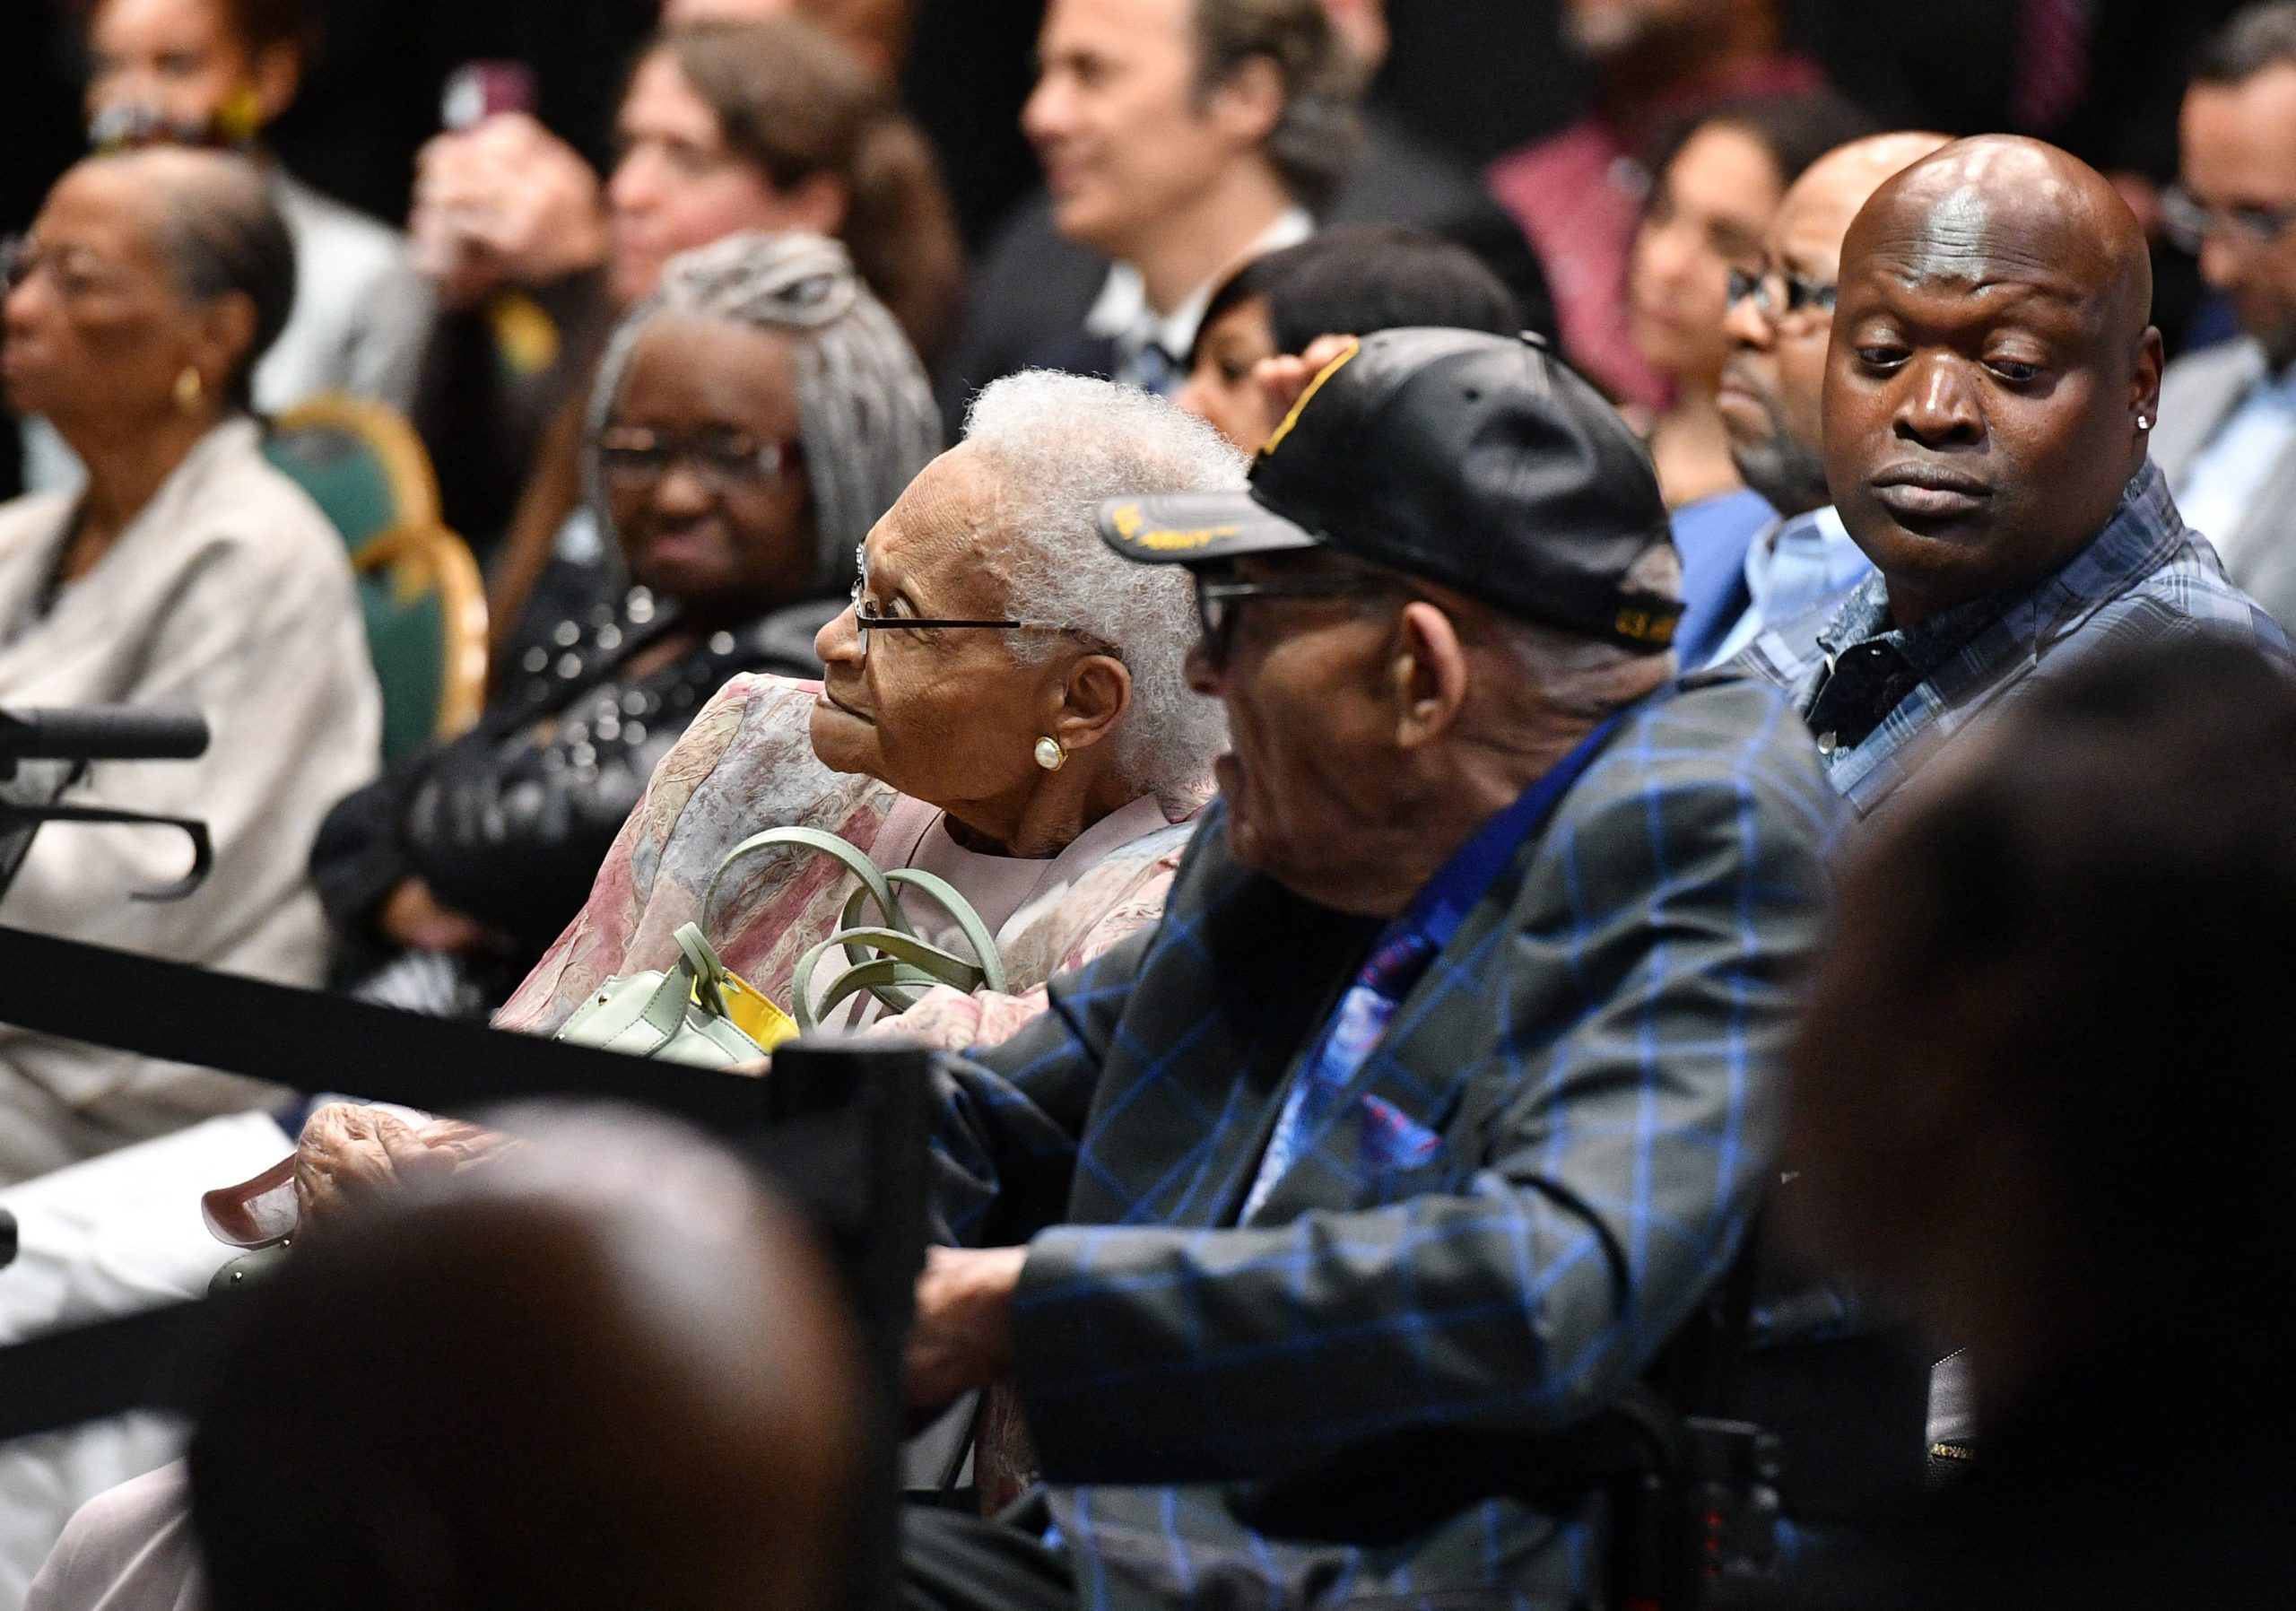 Tulsa race massacre Survivors Viola Fletcher (C) and Hughes Van Ellis (C R) listen to US President Joe Biden as he speaks on the 100th anniversary of the Tulsa Race Massacre at the Greenwood Cultural Center in Tulsa, Oklahoma on June 1, 2021. - US President Joe Biden traveled Tuesday to Oklahoma to honor the victims of a 1921 racial massacre in the city of Tulsa, where African American residents are hoping he will hear their call for financial reparations 100 years on. (Photo by MANDEL NGAN / AFP) (Photo by MANDEL NGAN/AFP via Getty Images)